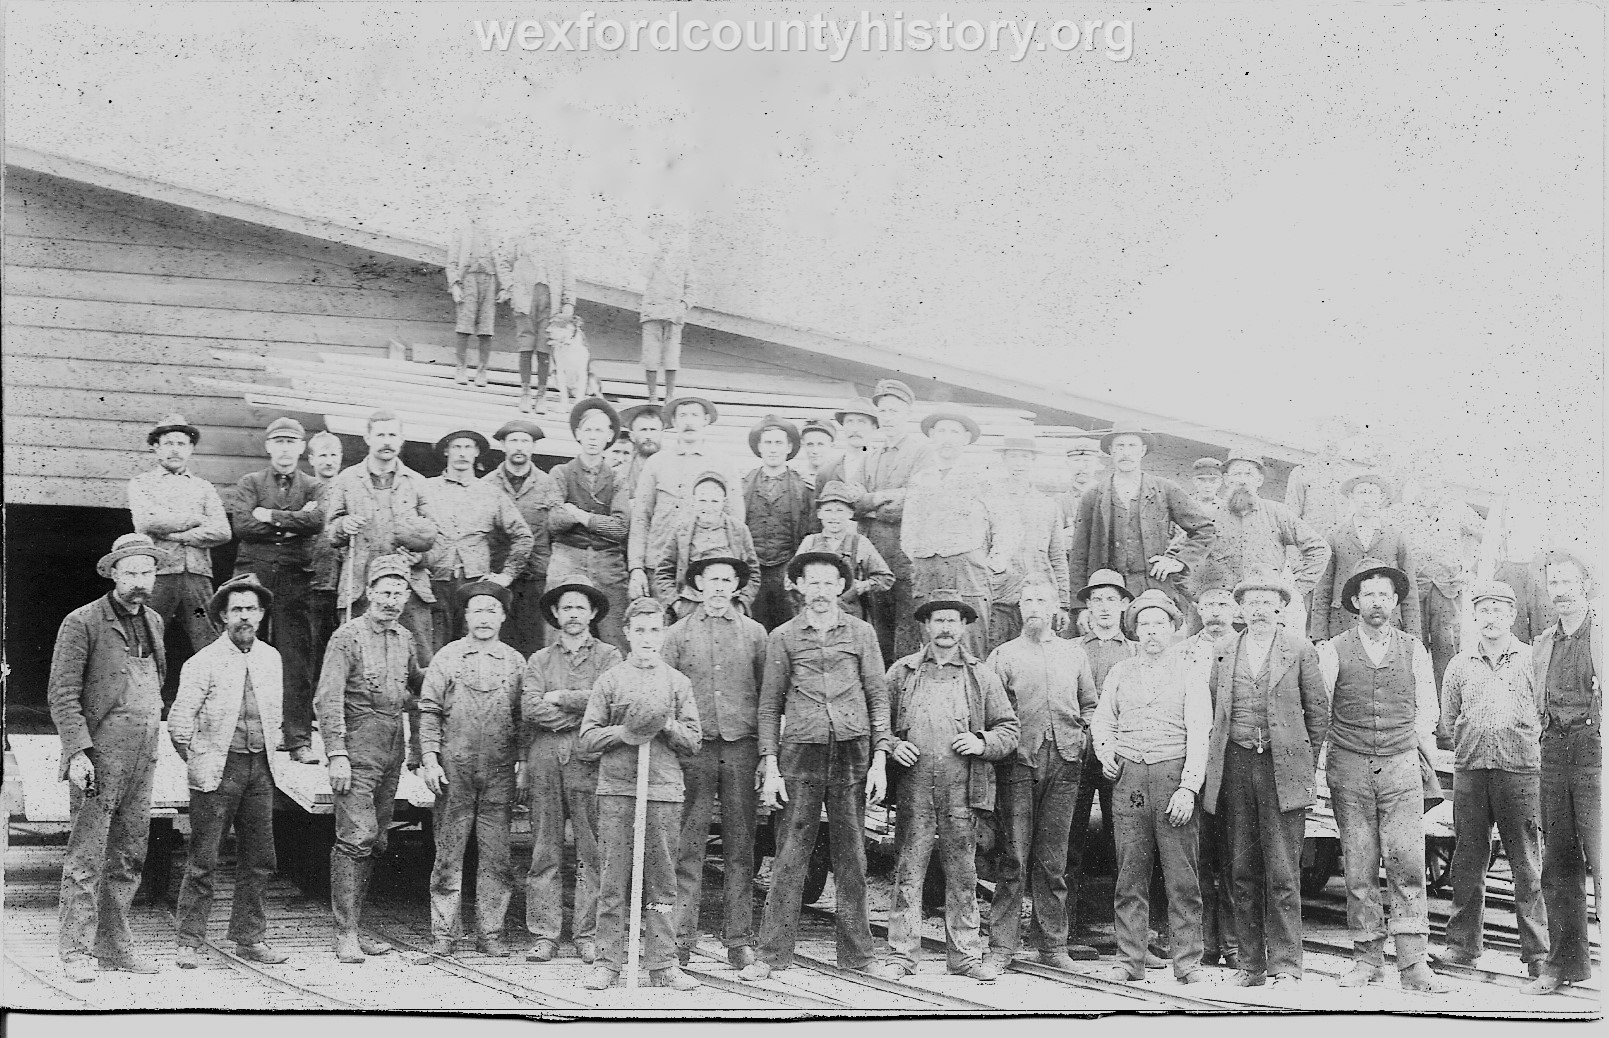 Cadillac-People-Factory-Work-Staff-FP1ts8159